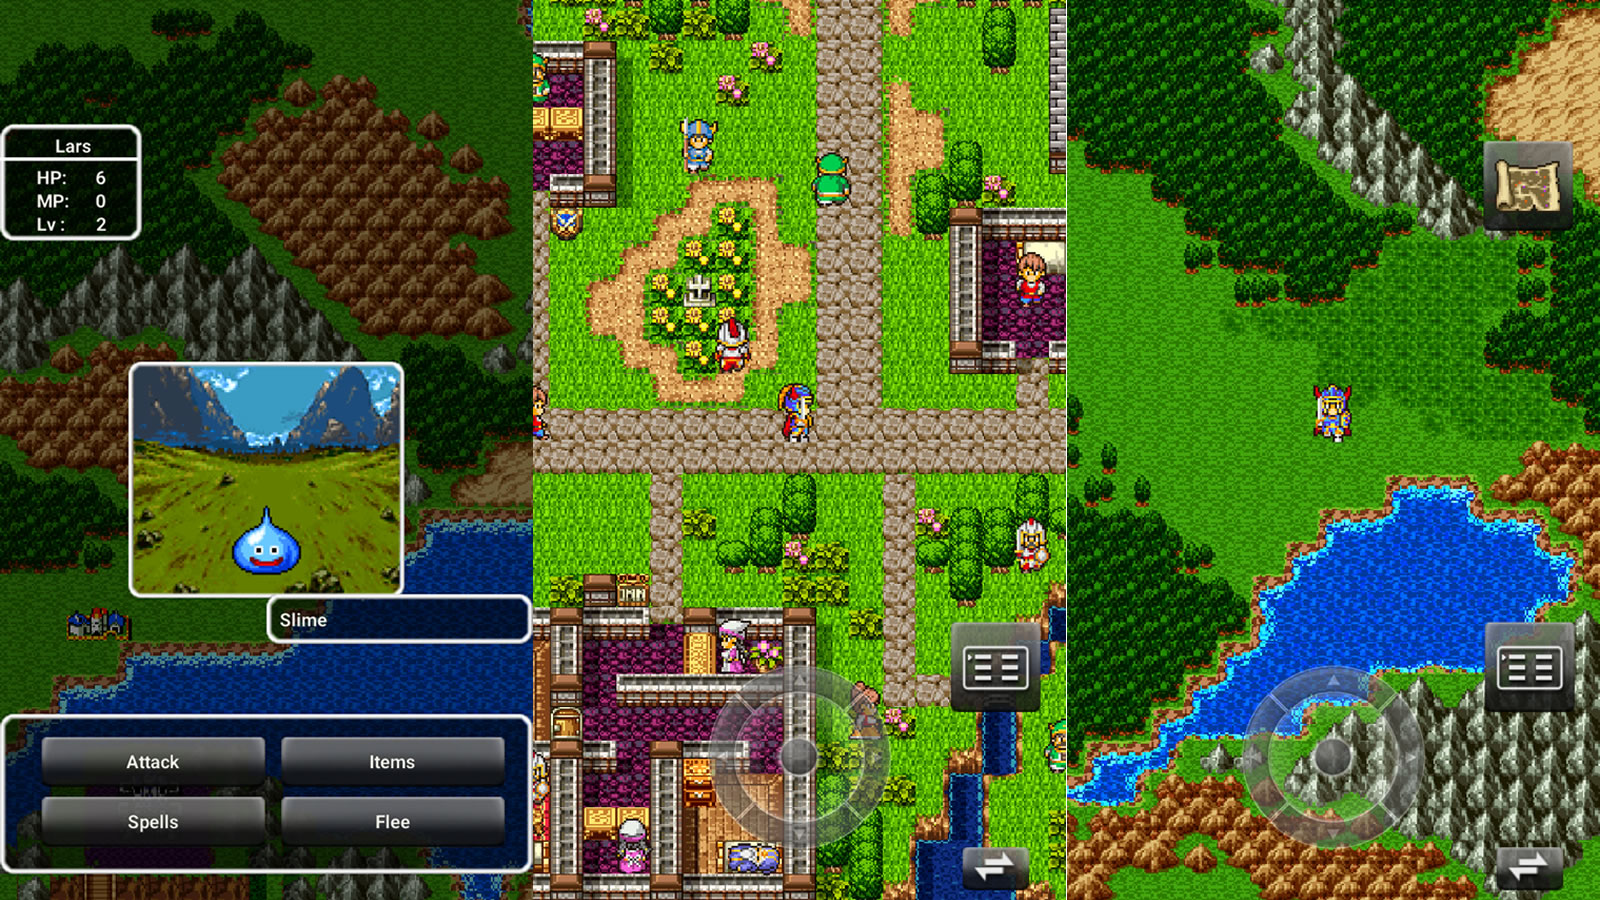 dragon-quest-i-android-review-001